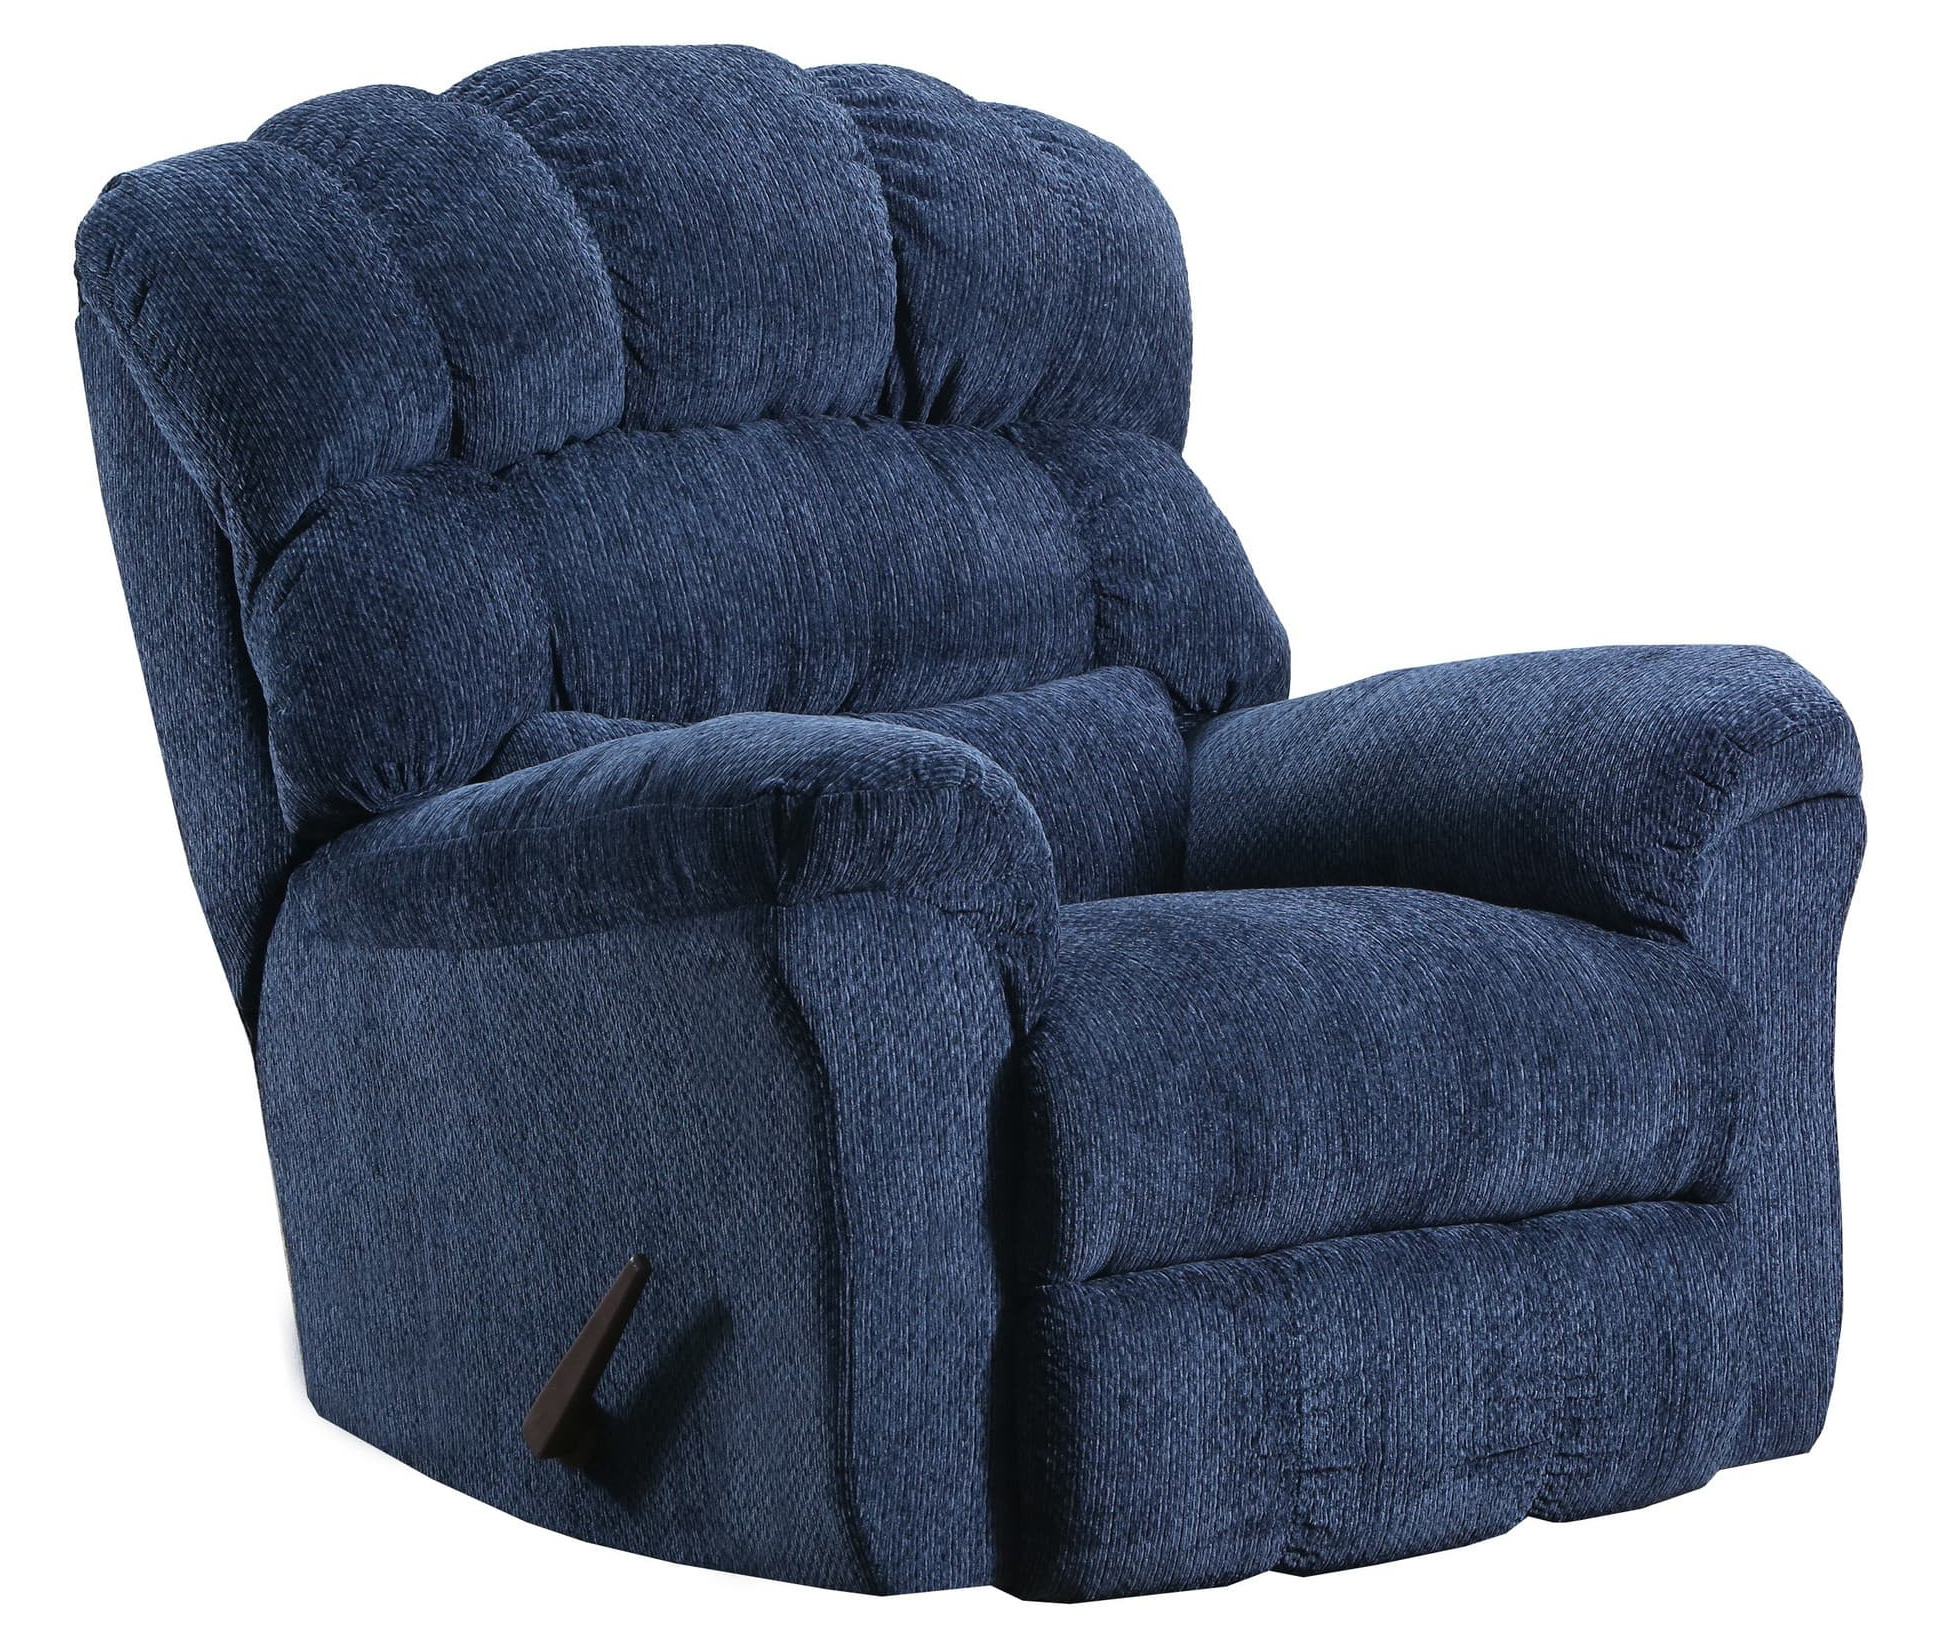 U558 Recliner Royal